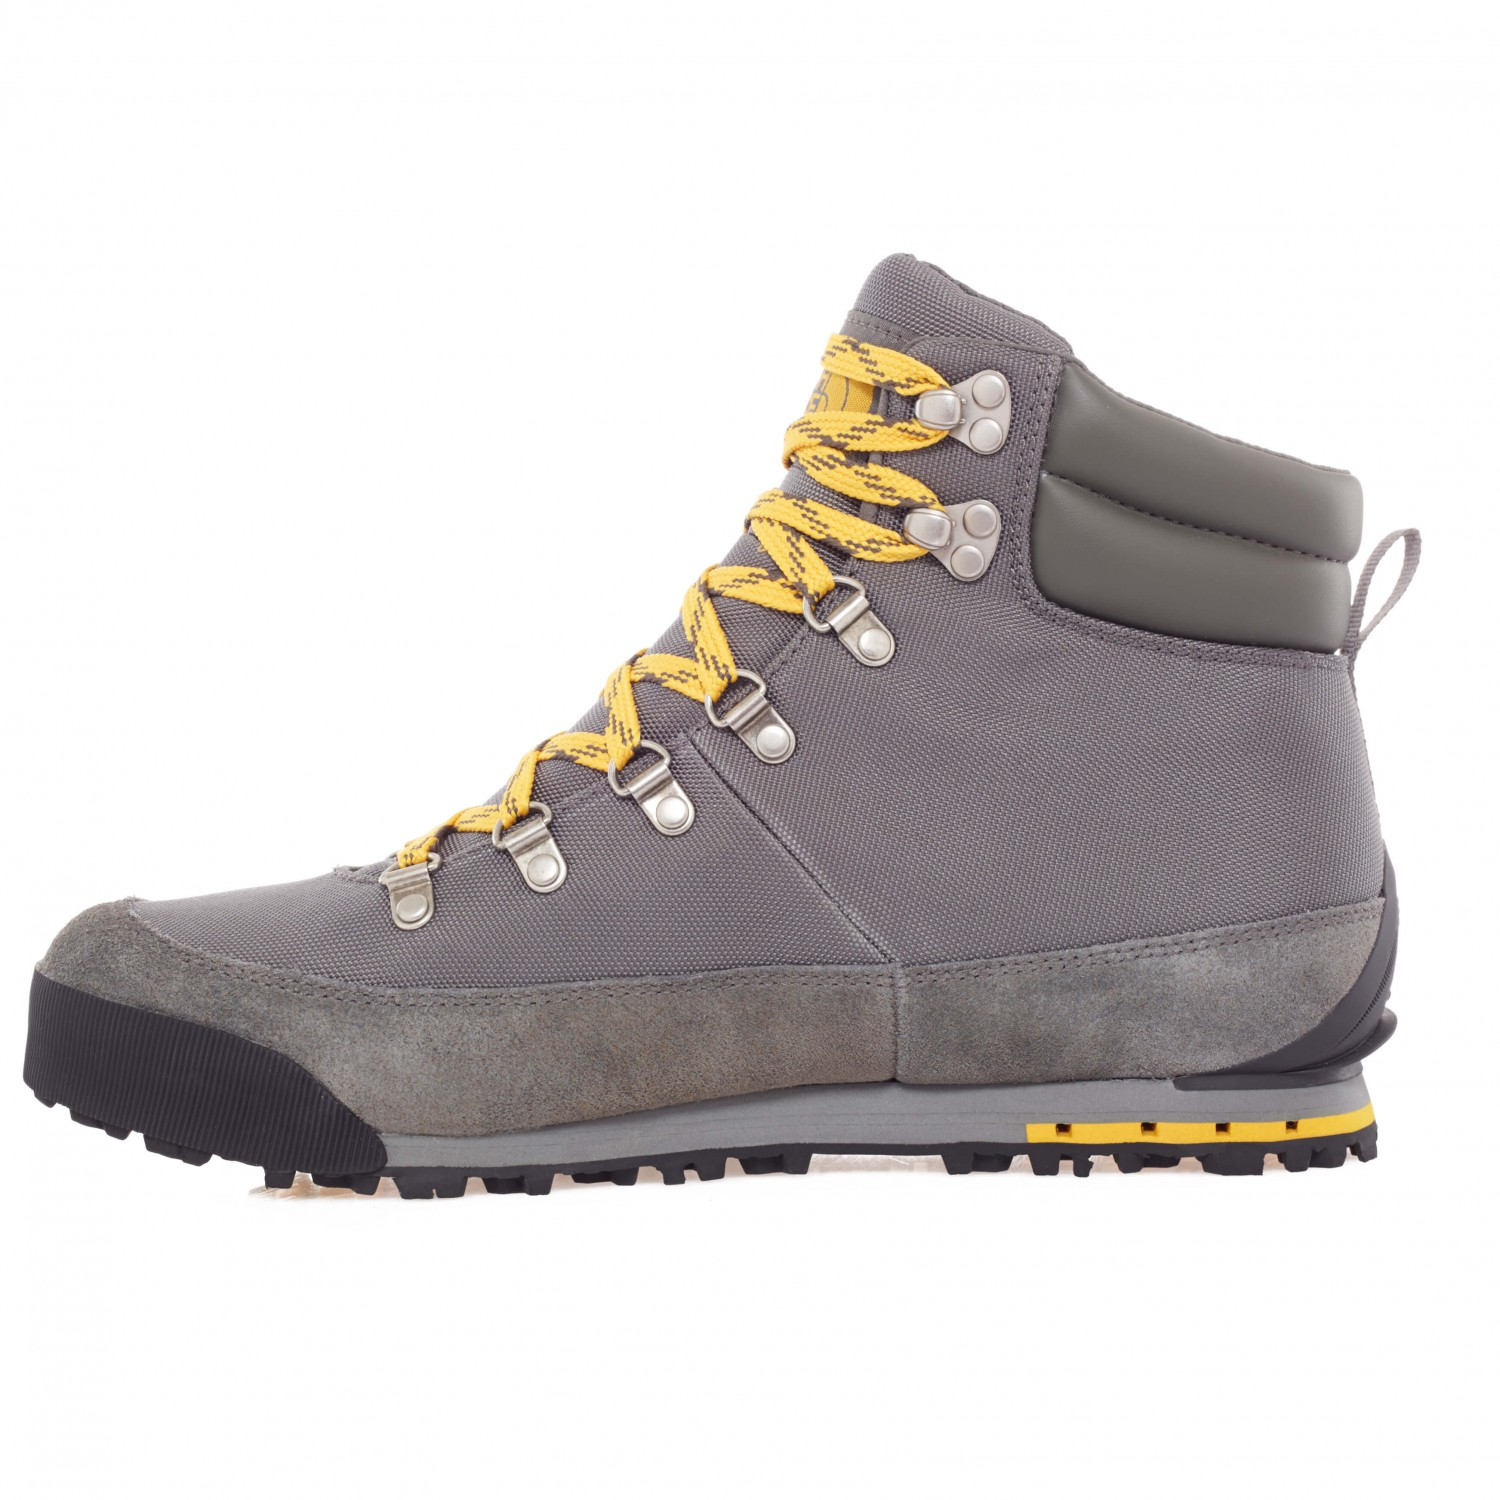 ... The North Face - Back-To-Berkeley NL - Scarpe invernali ... 2f8e42e8a11b